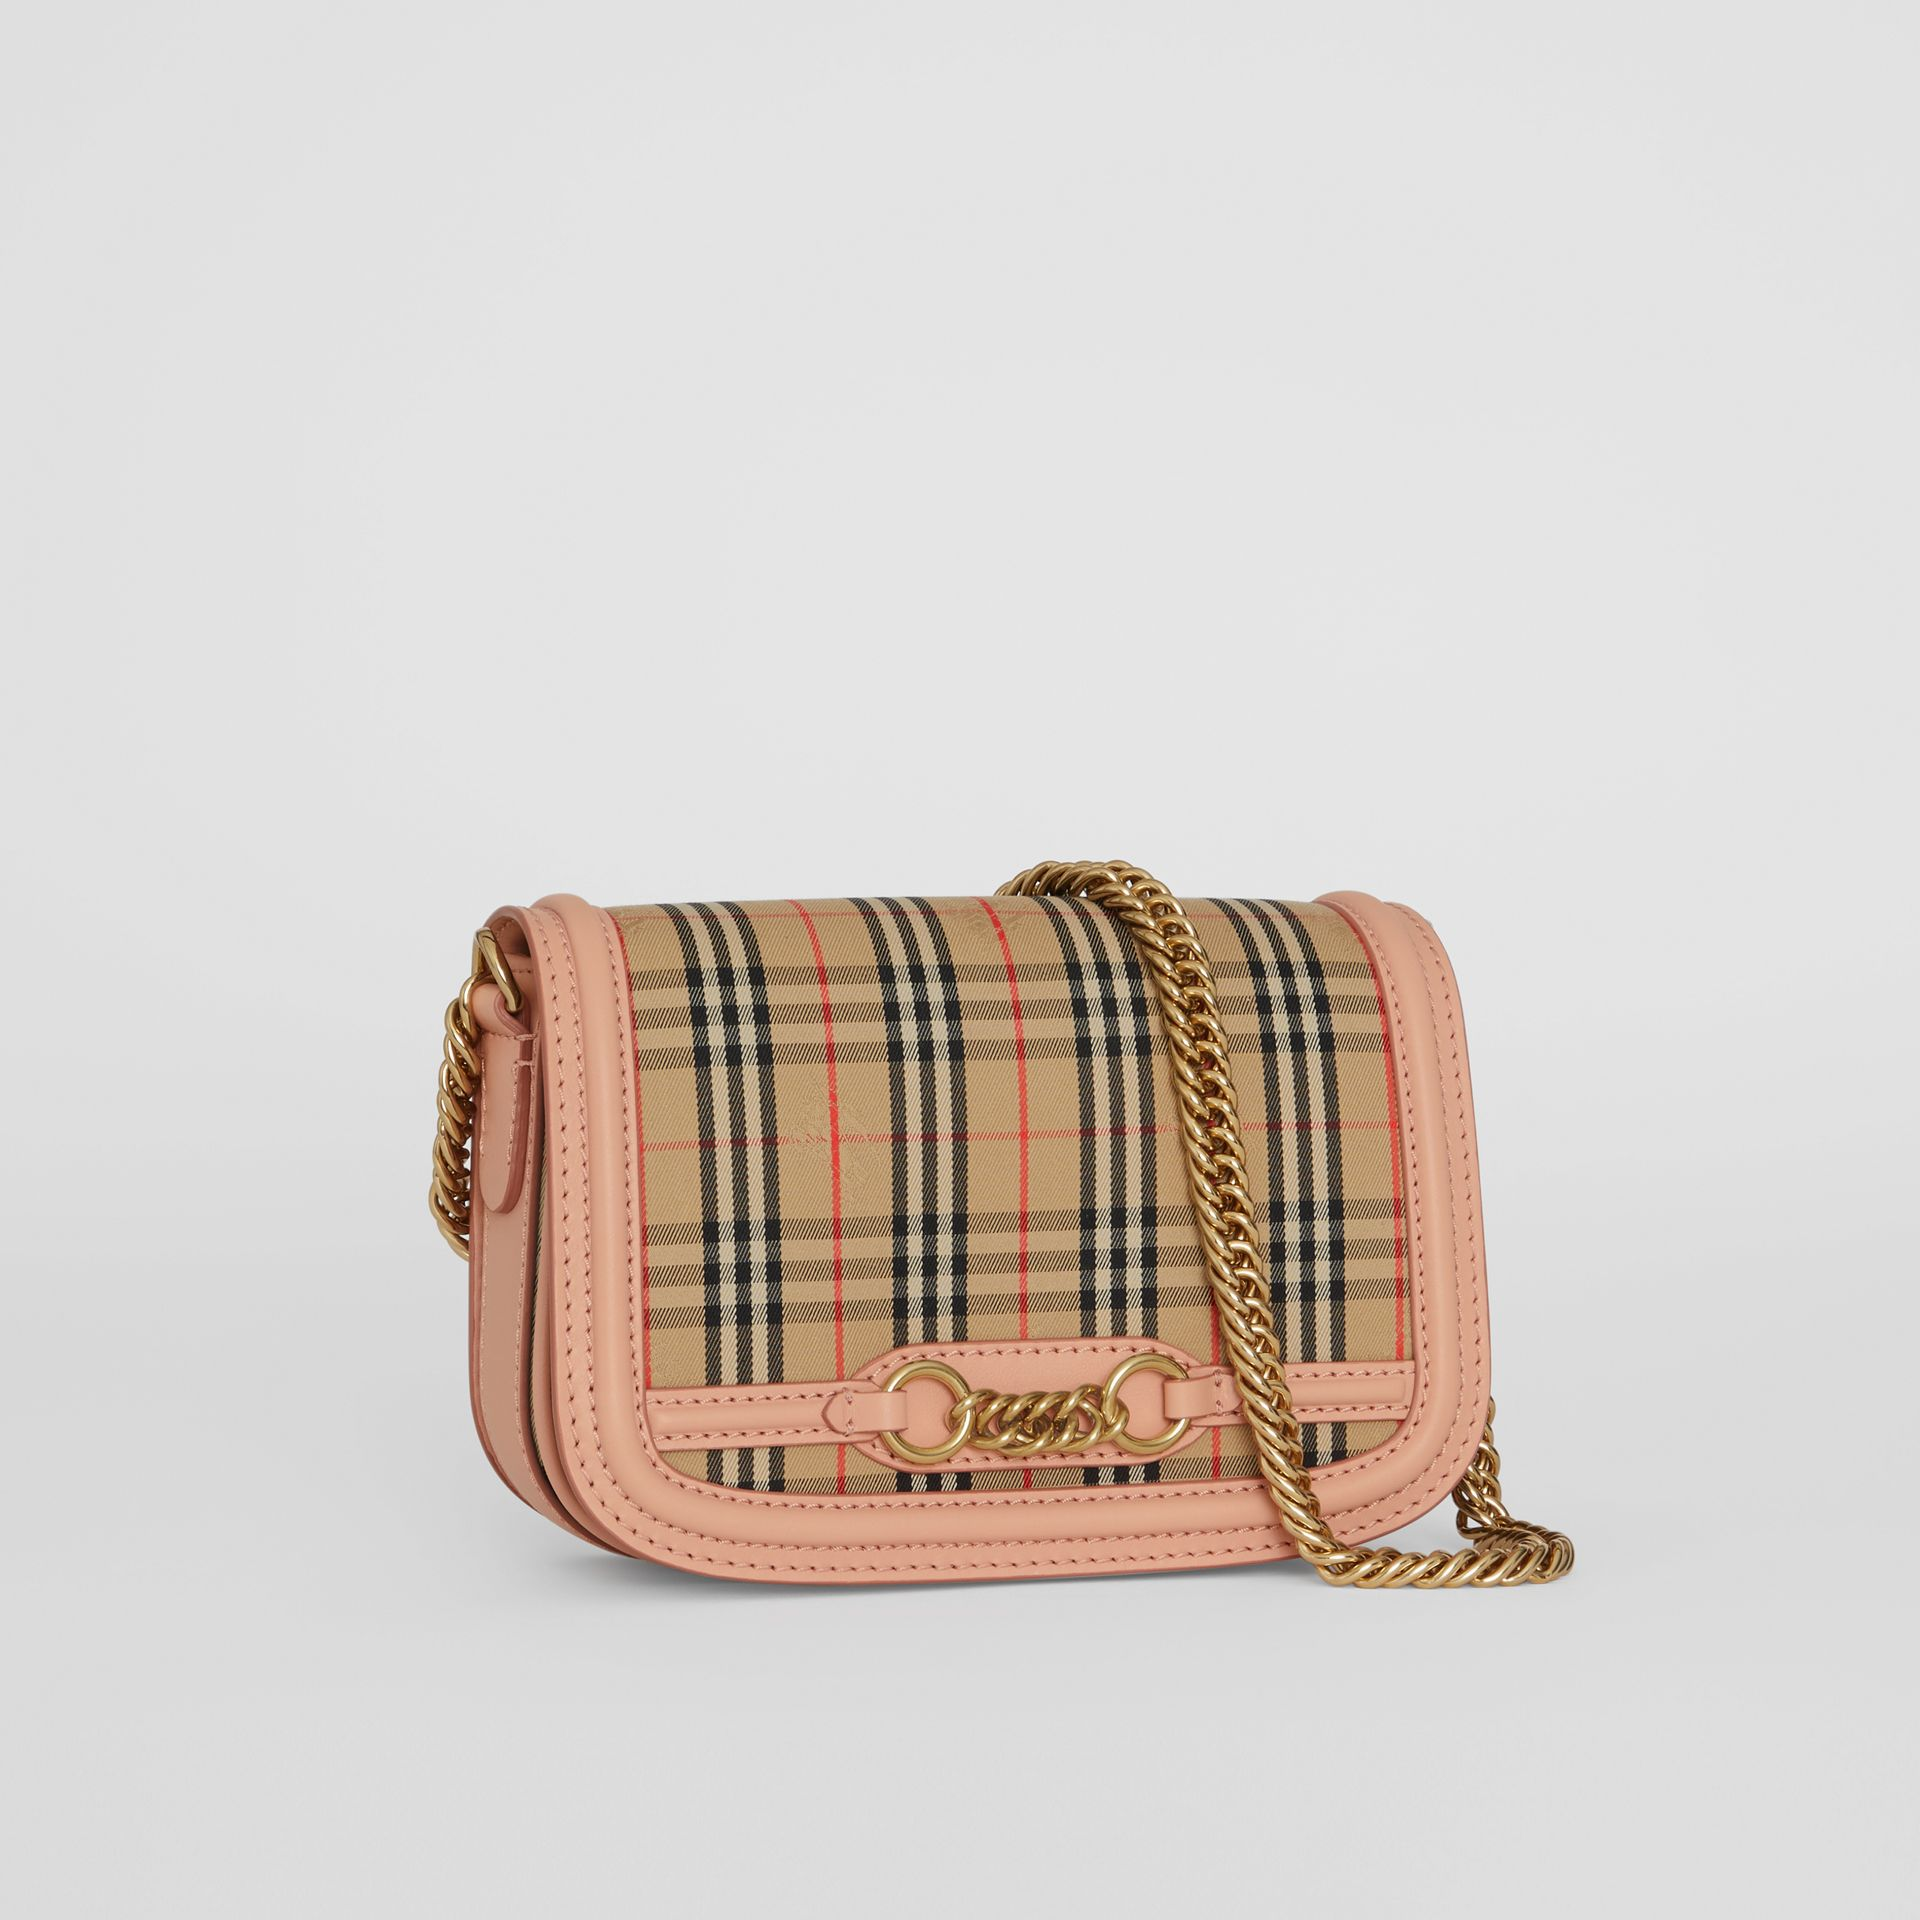 The 1983 Check Link Bag with Leather Trim in Peach - Women | Burberry - gallery image 6